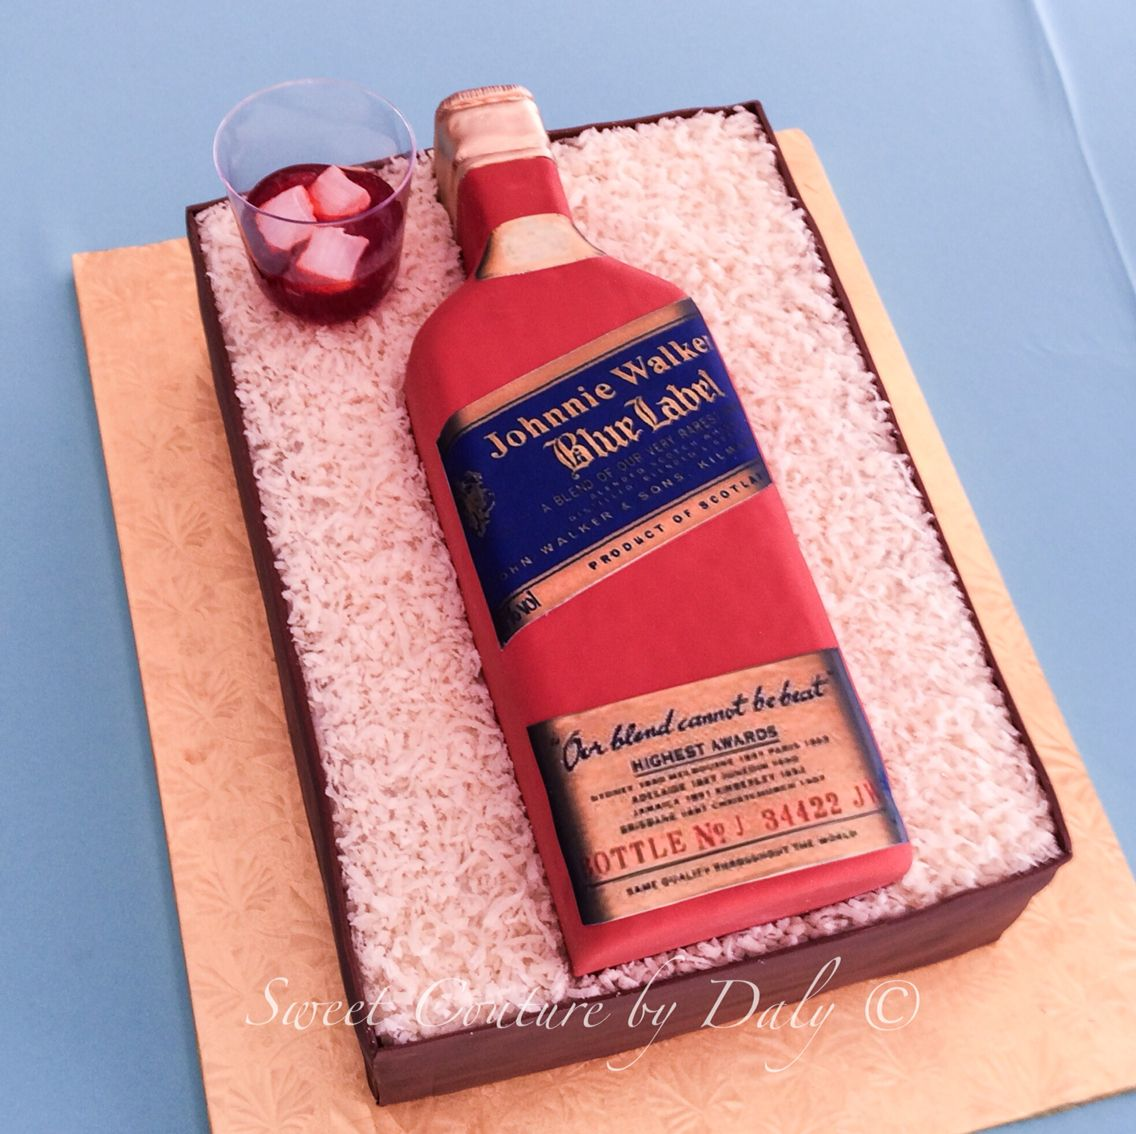 Johnnie Walker Blue Label Cake Bottle Cakes Pinterest Cake